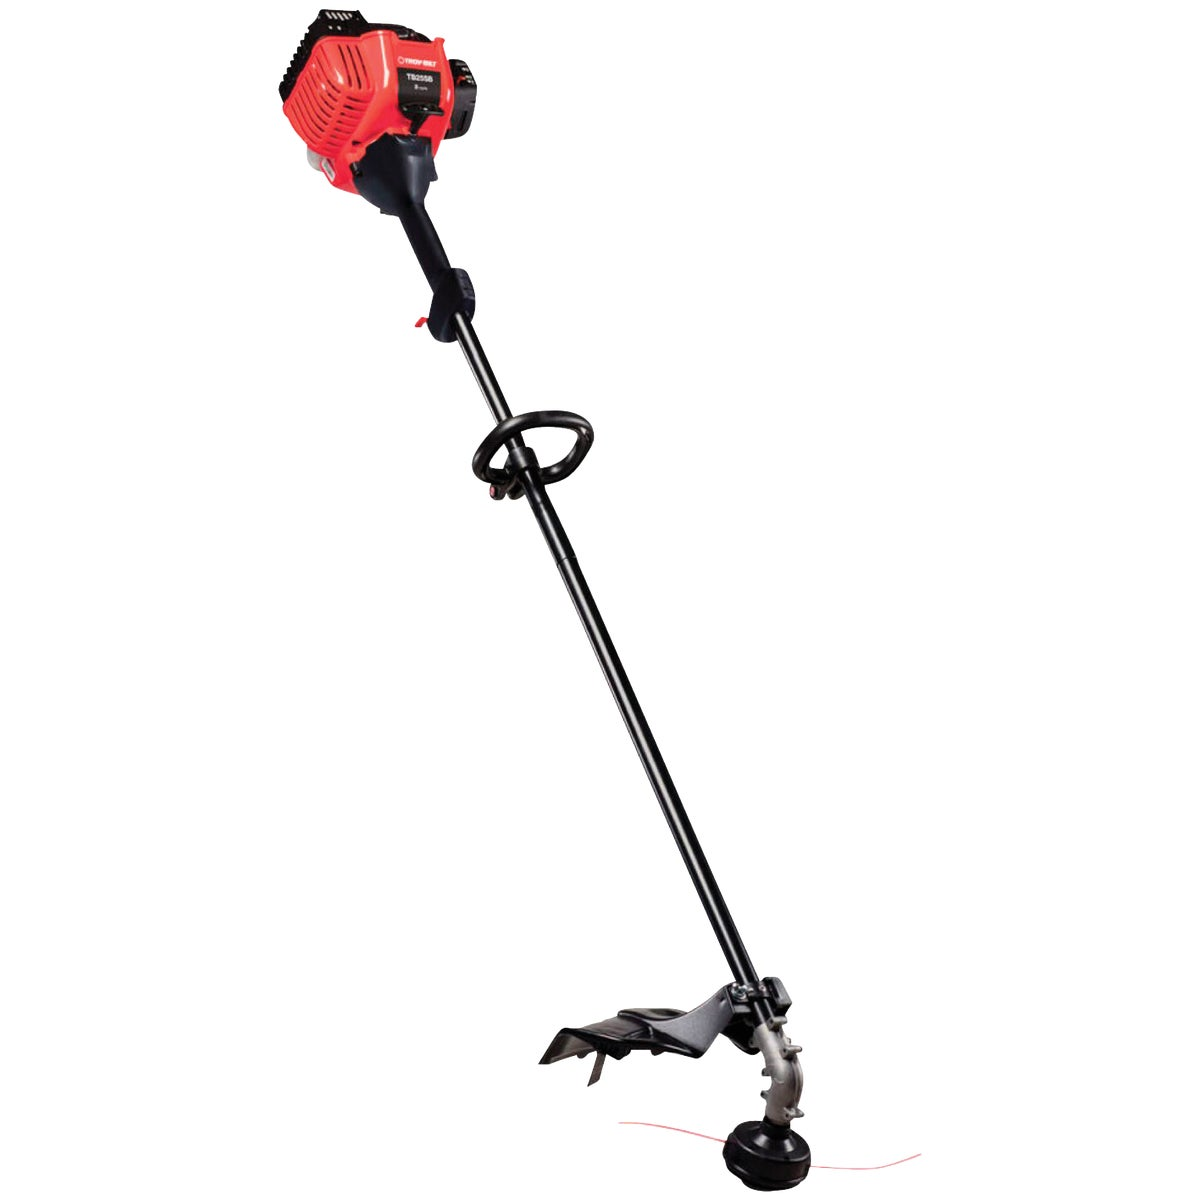 2-CYC GAS TRIMMER